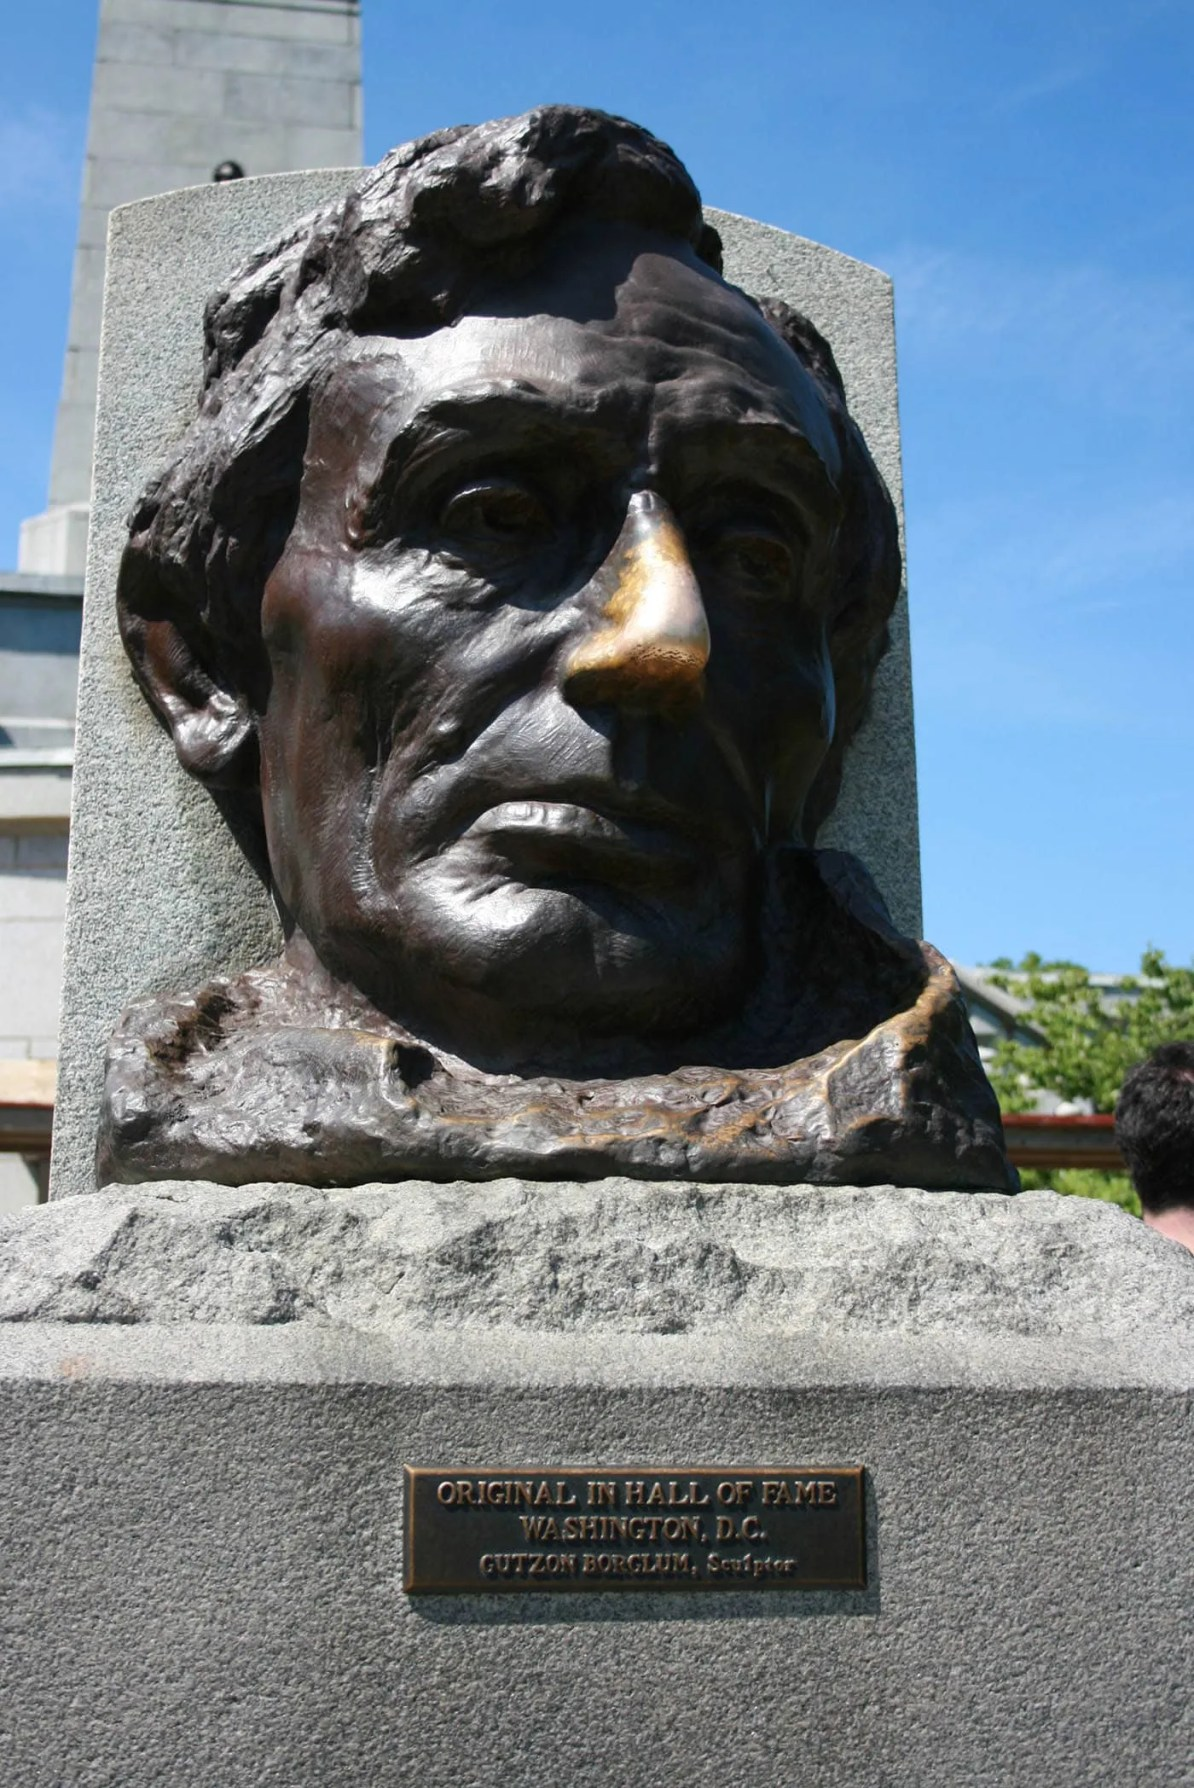 Abraham Lincoln's Lucky Nose in Springfield, Illinois - rub Lincoln's nose for good luck at Oak Ridge Cemetery in Springfield, Illinois